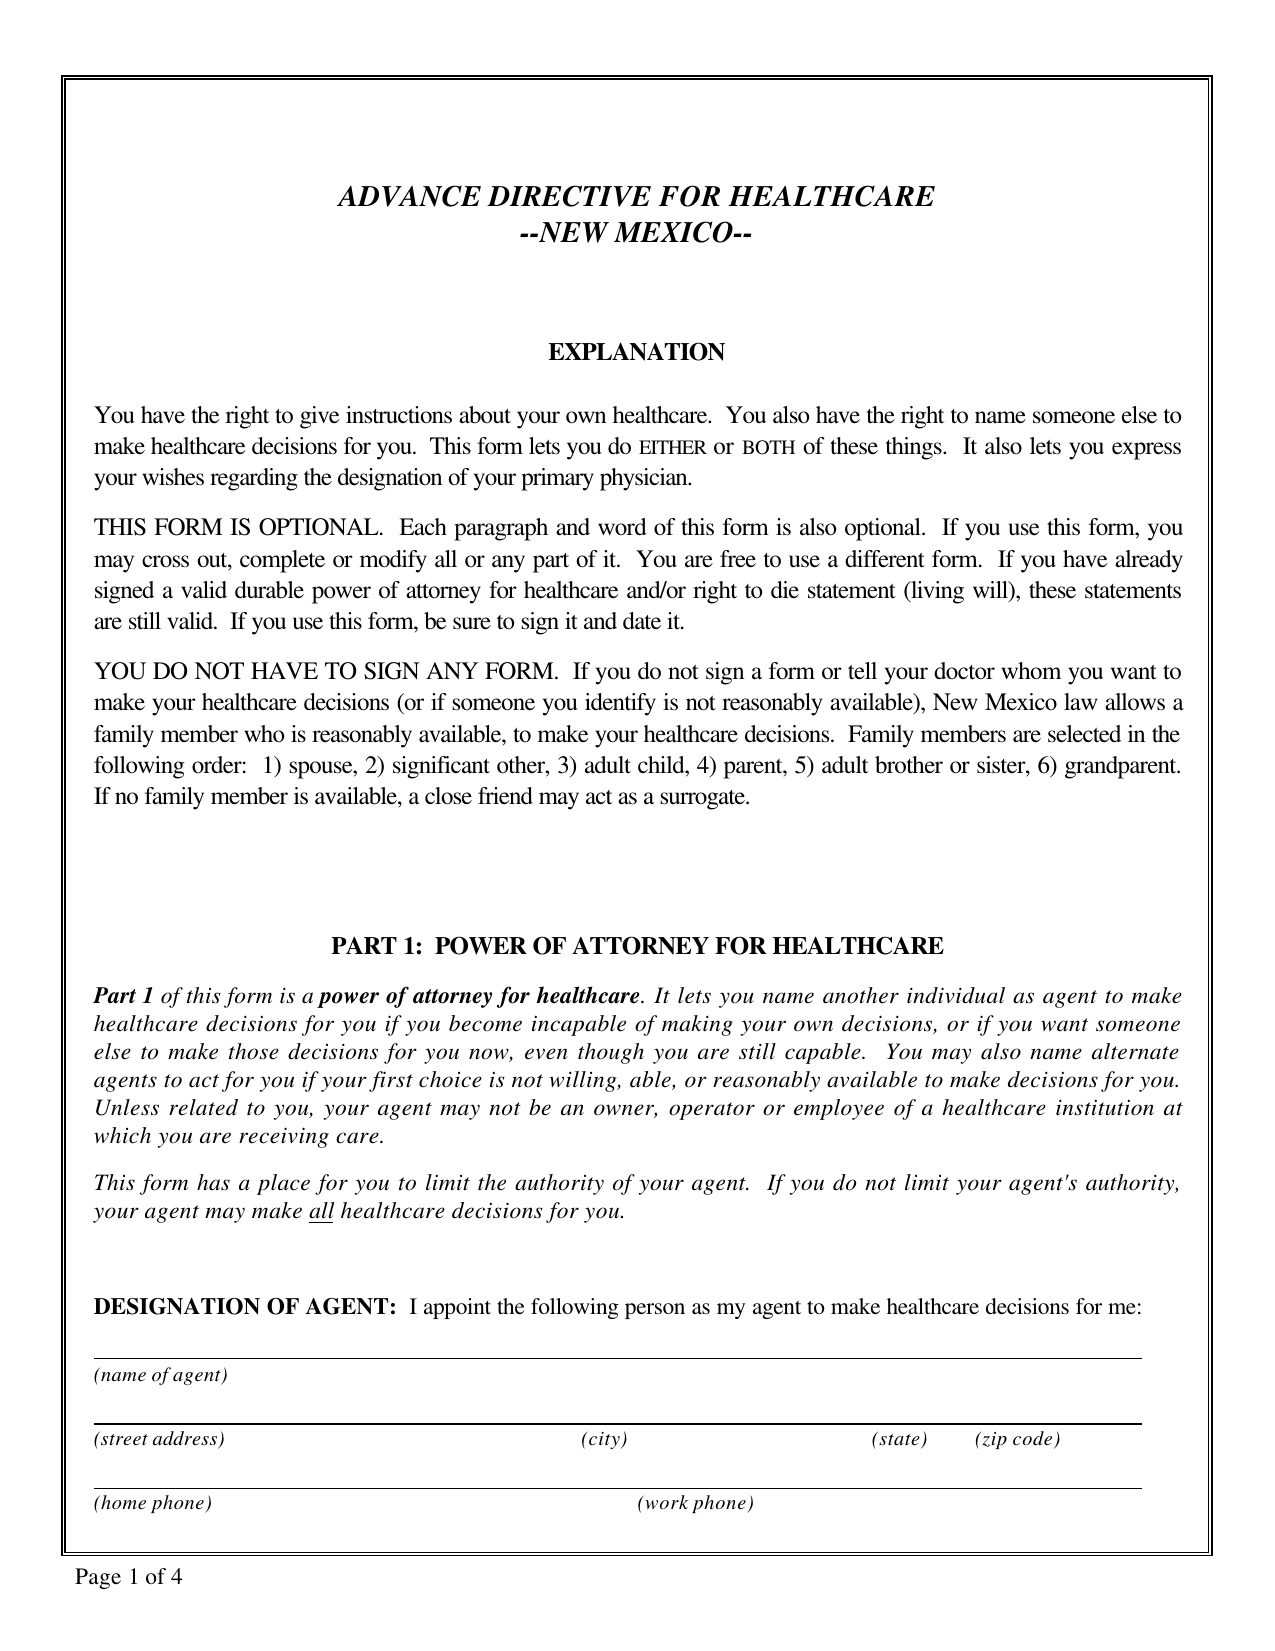 download new mexico living will form  u2013 advance directive